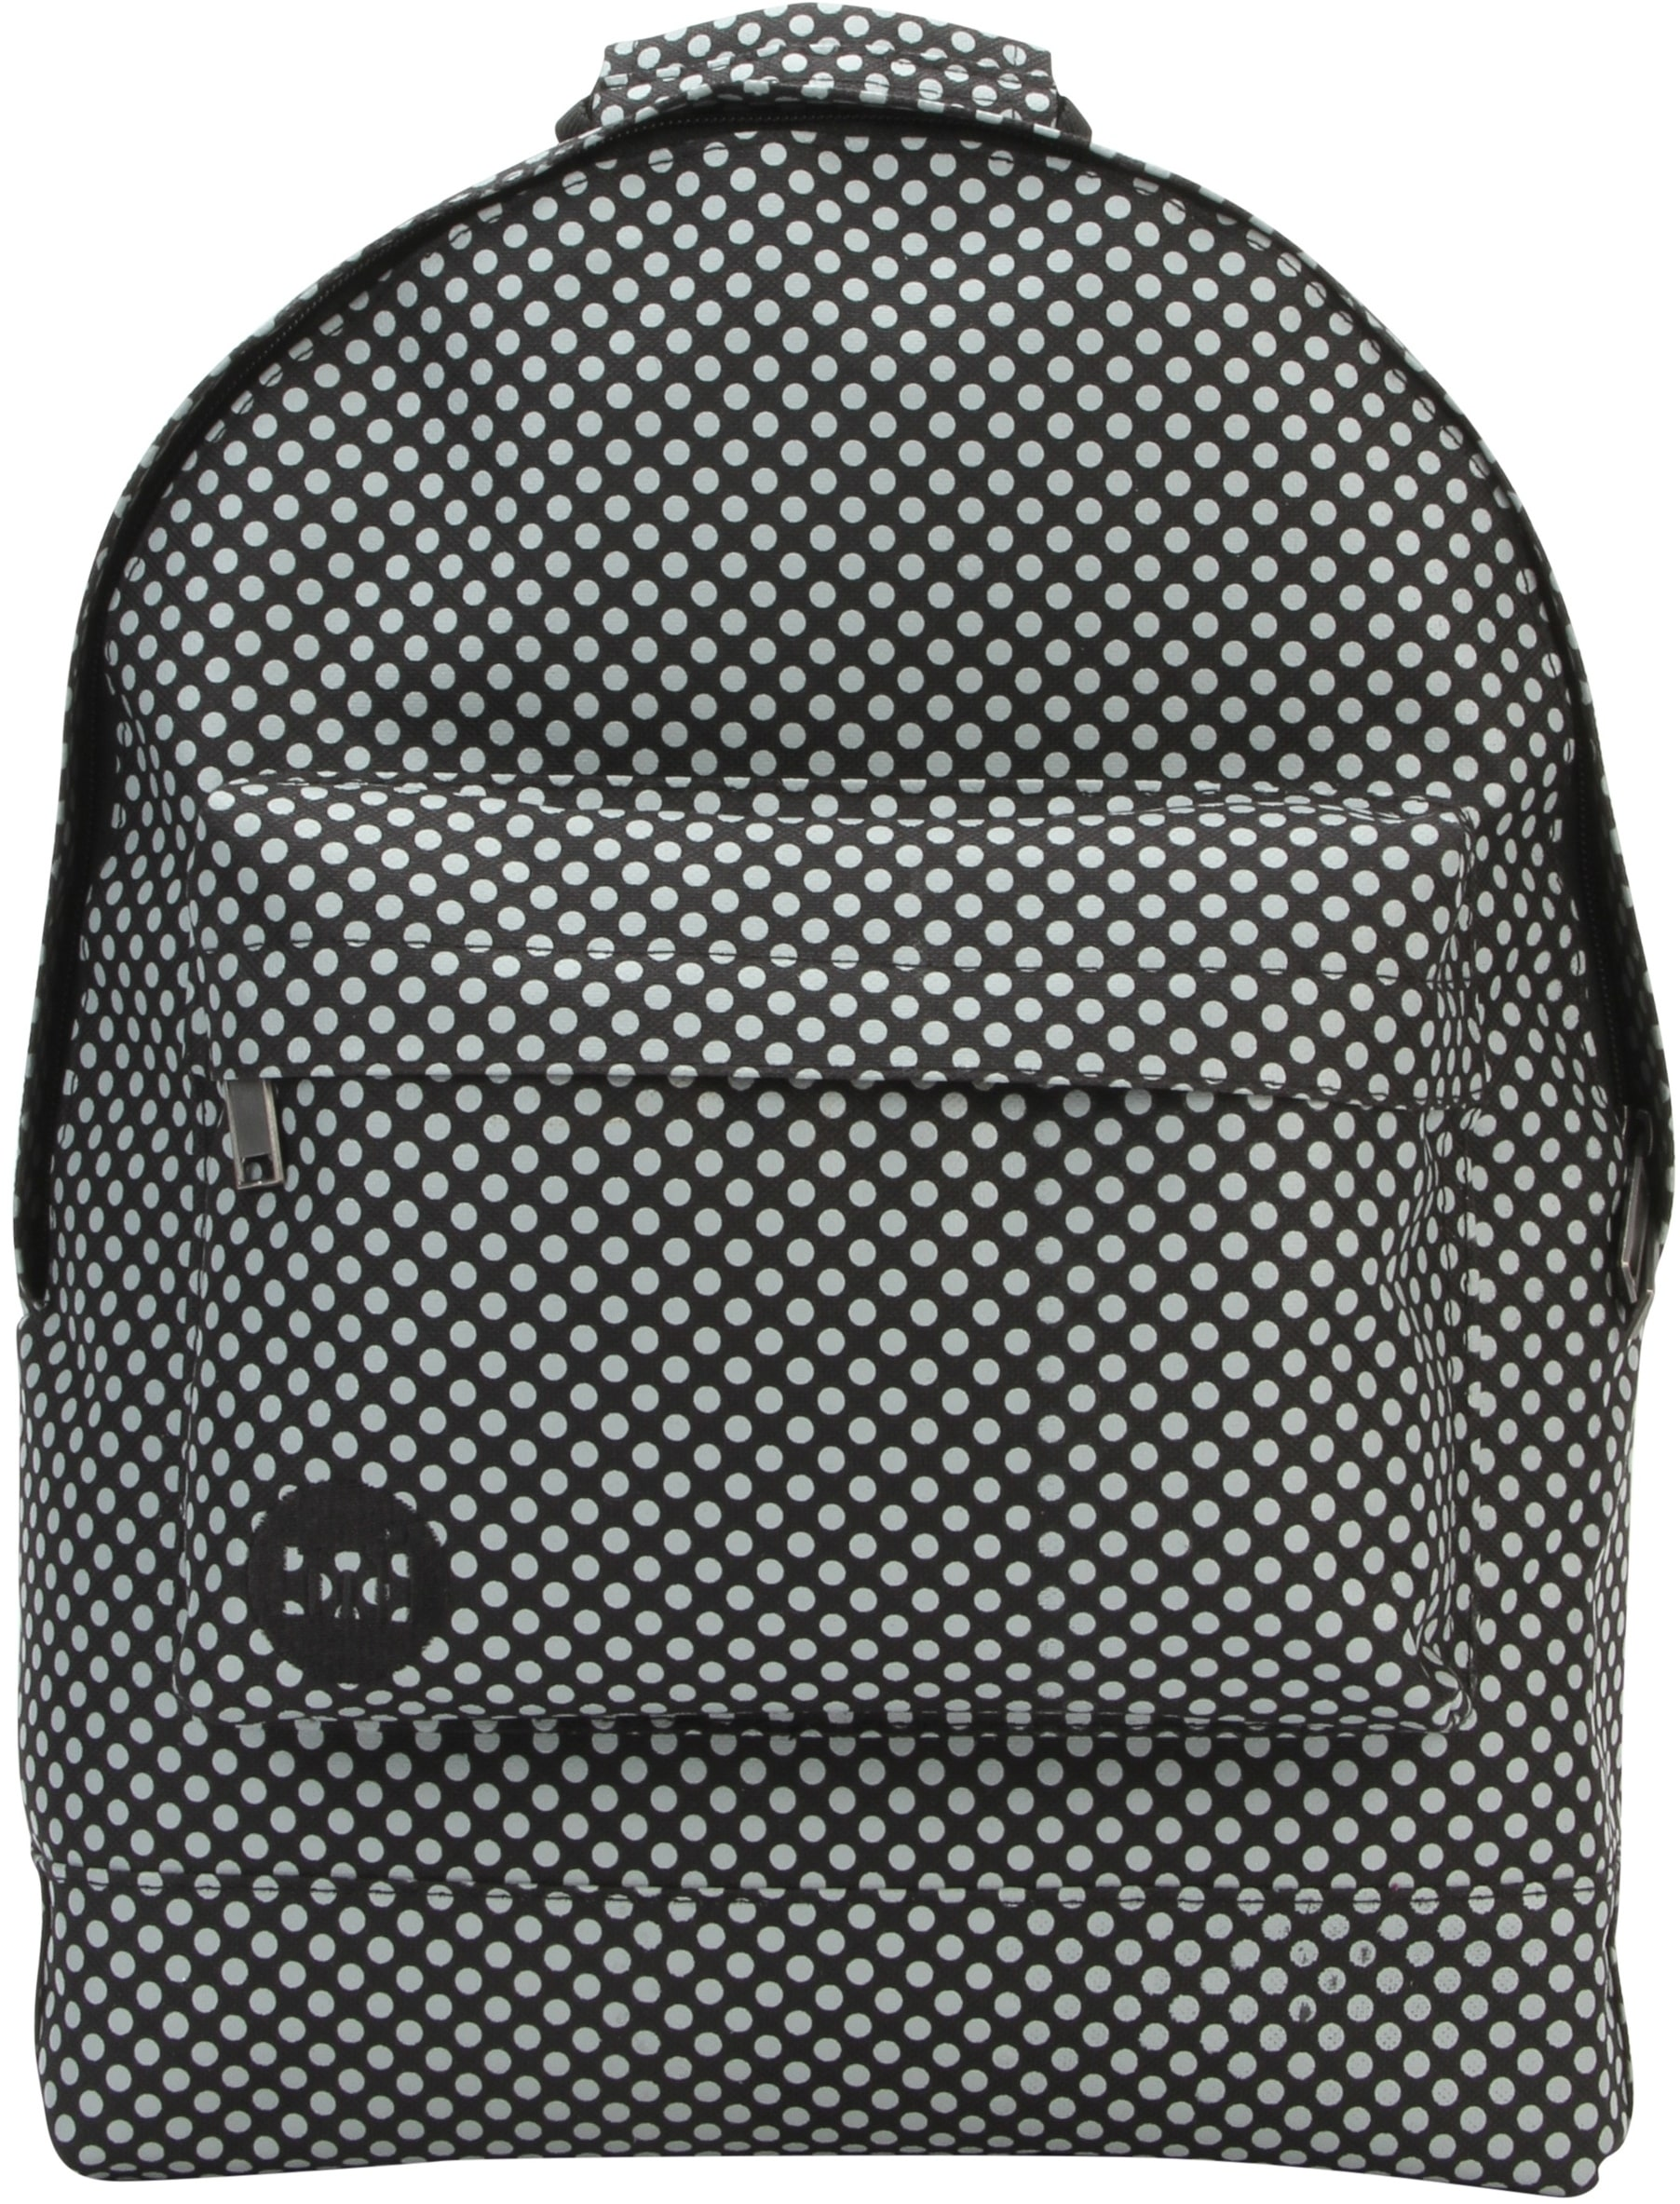 MiPac Microdot Backpack  Black